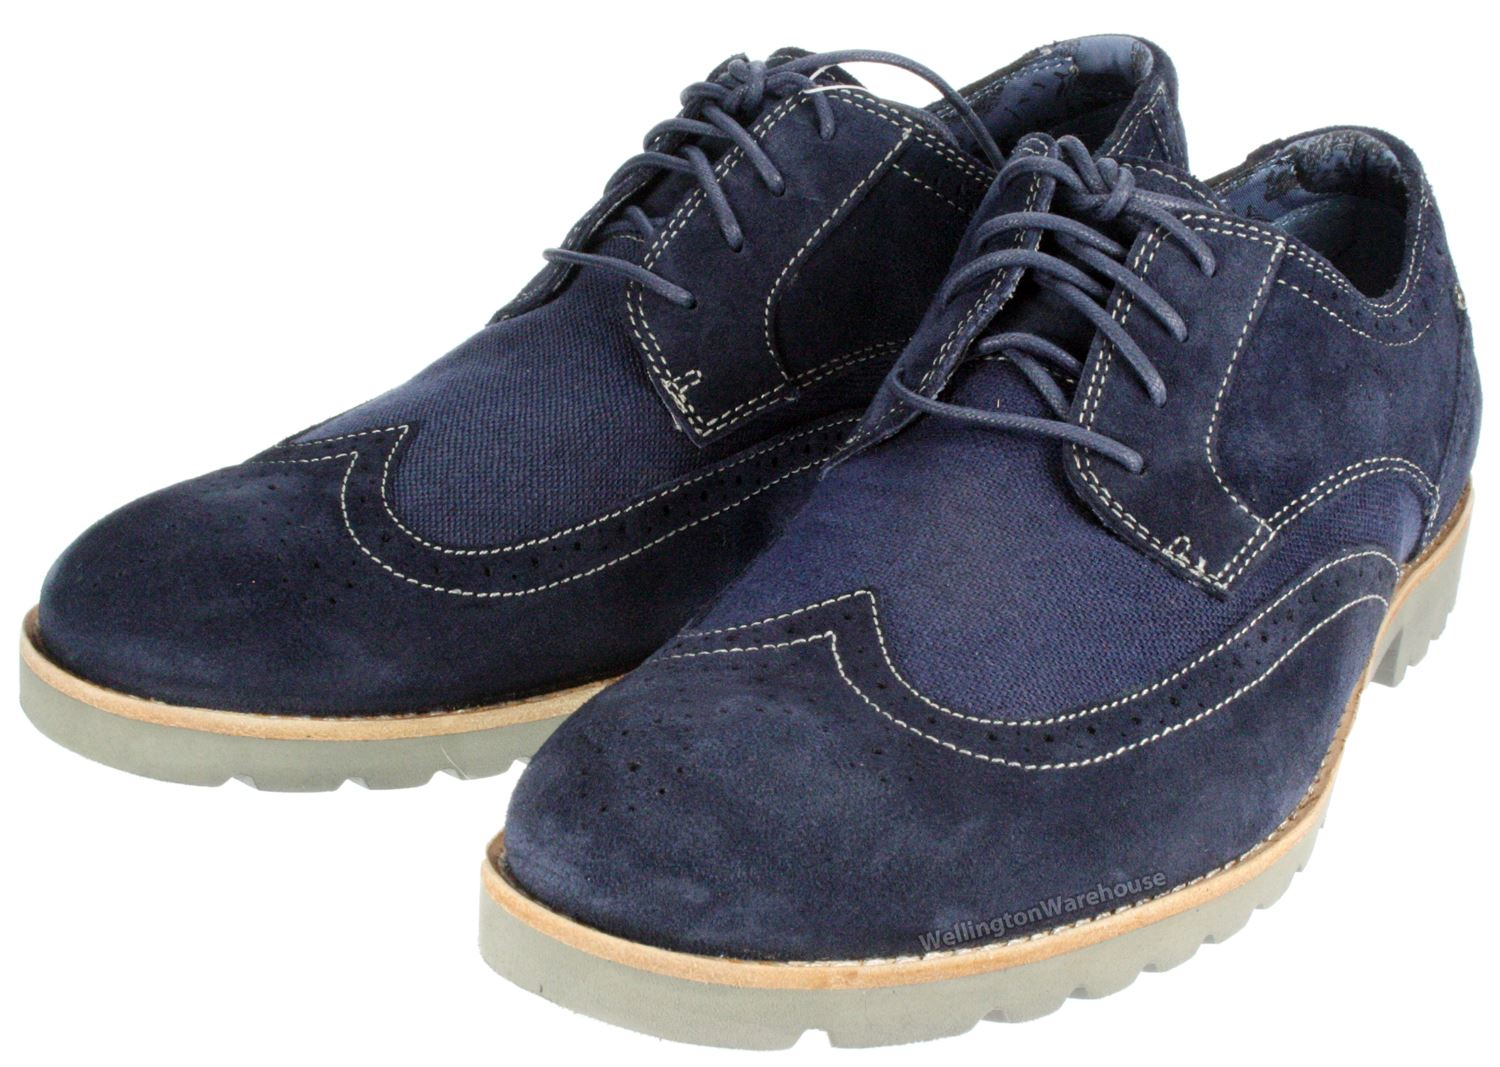 Rockport-Mens-K73347-Navy-suede-leather-lace-up-